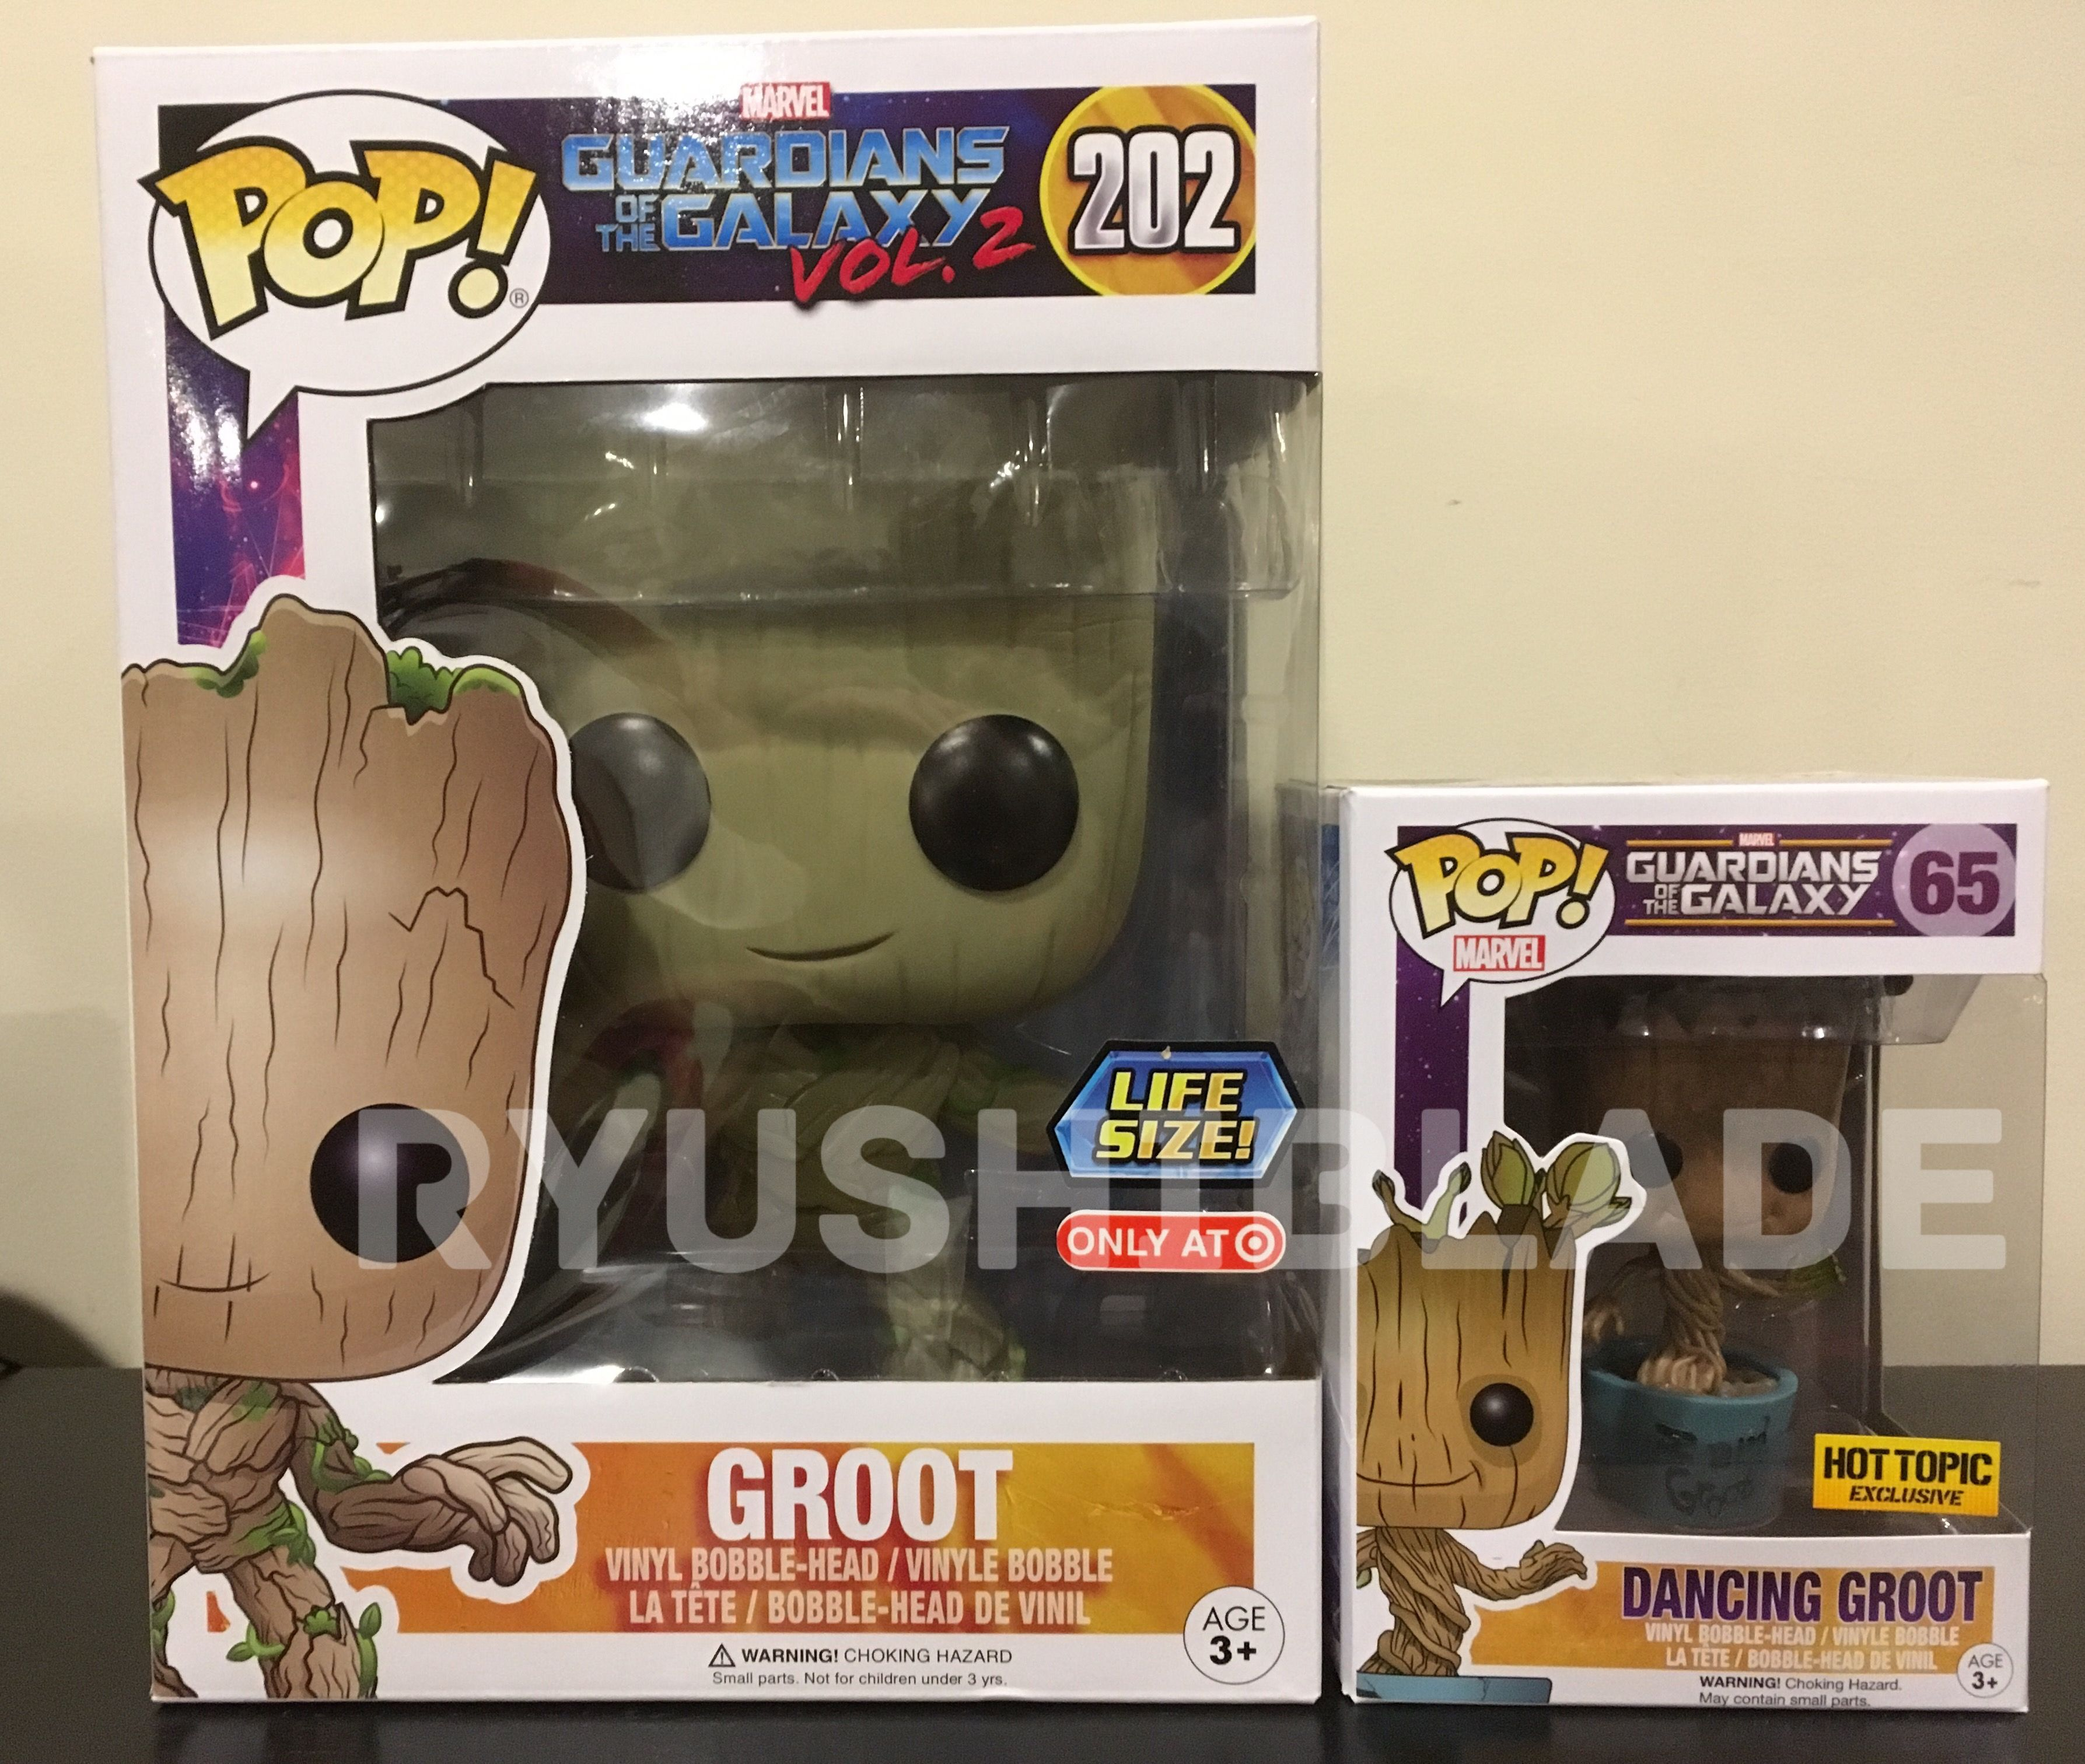 I Am Groot Funko Pop 202 Life Size 10 Inch Groot Targetexclusive Babygroot Geek Guardianofthegalaxy Geek Toys Funko Guardians Of The Galaxy